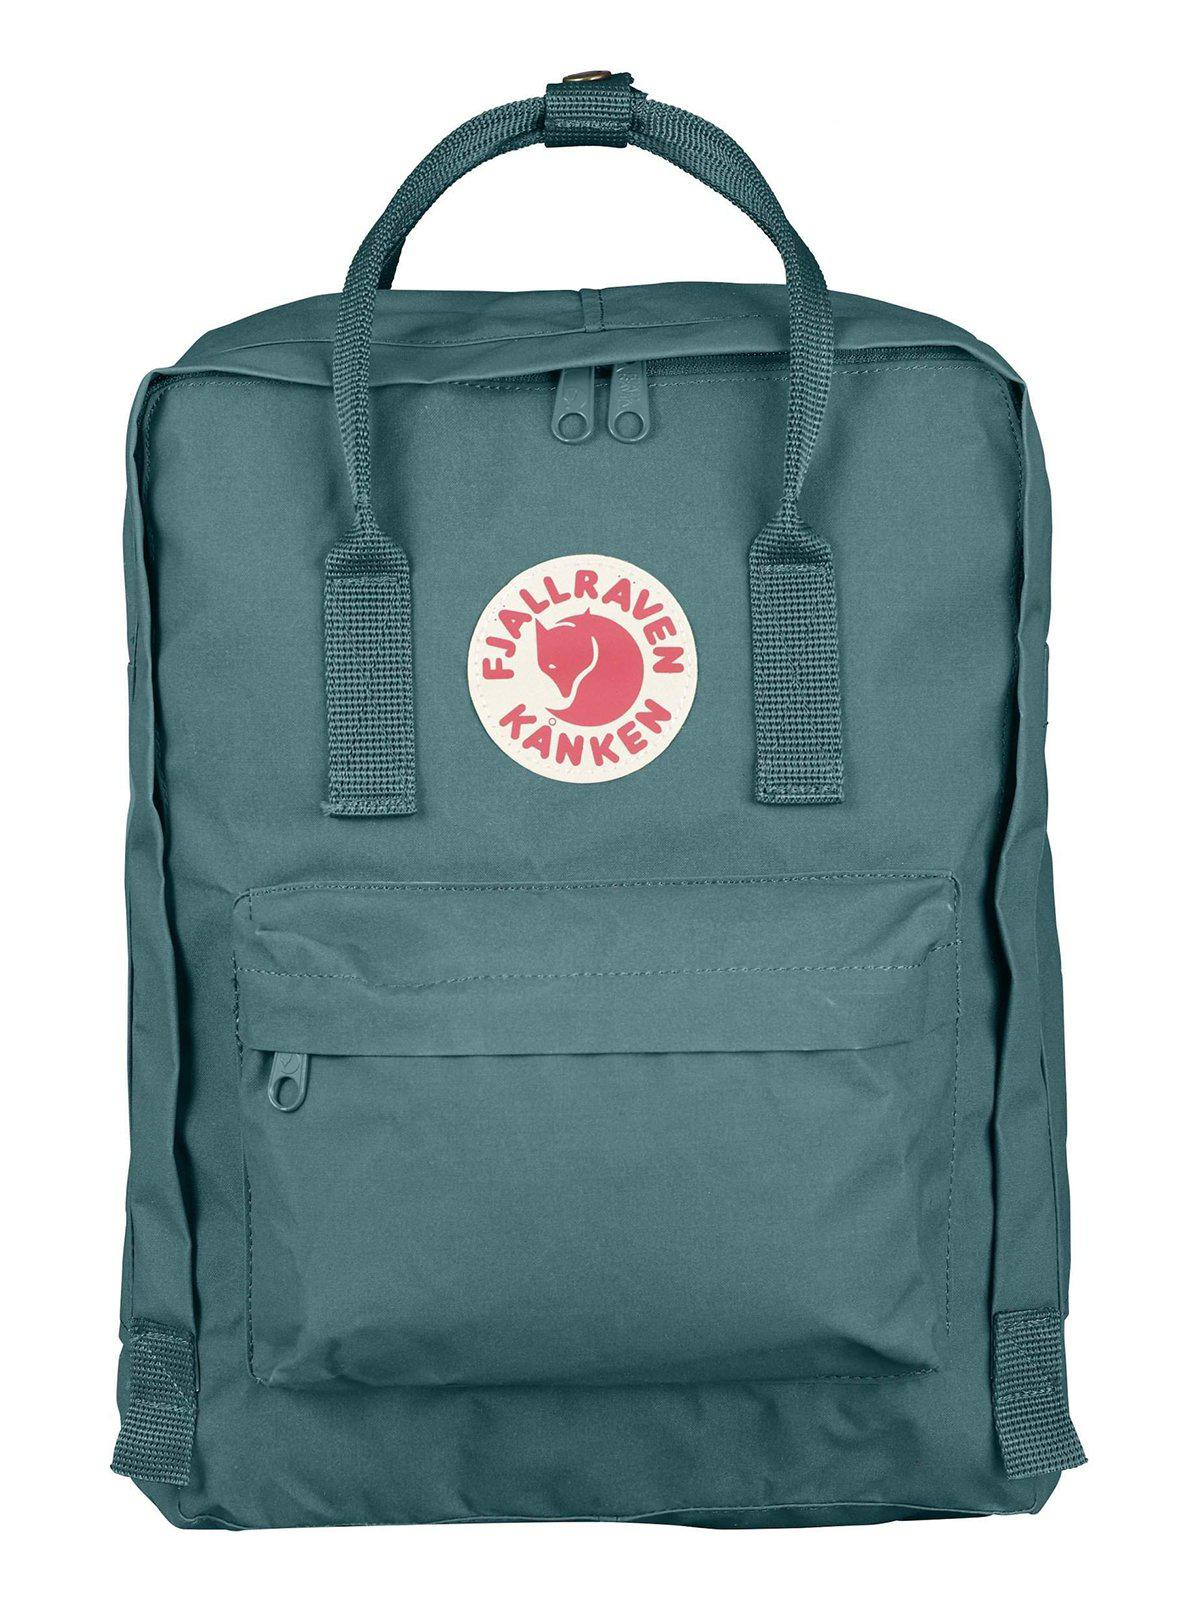 Fjallraven Kanken Classic Backpack Frost Green - MORE by Morello Indonesia